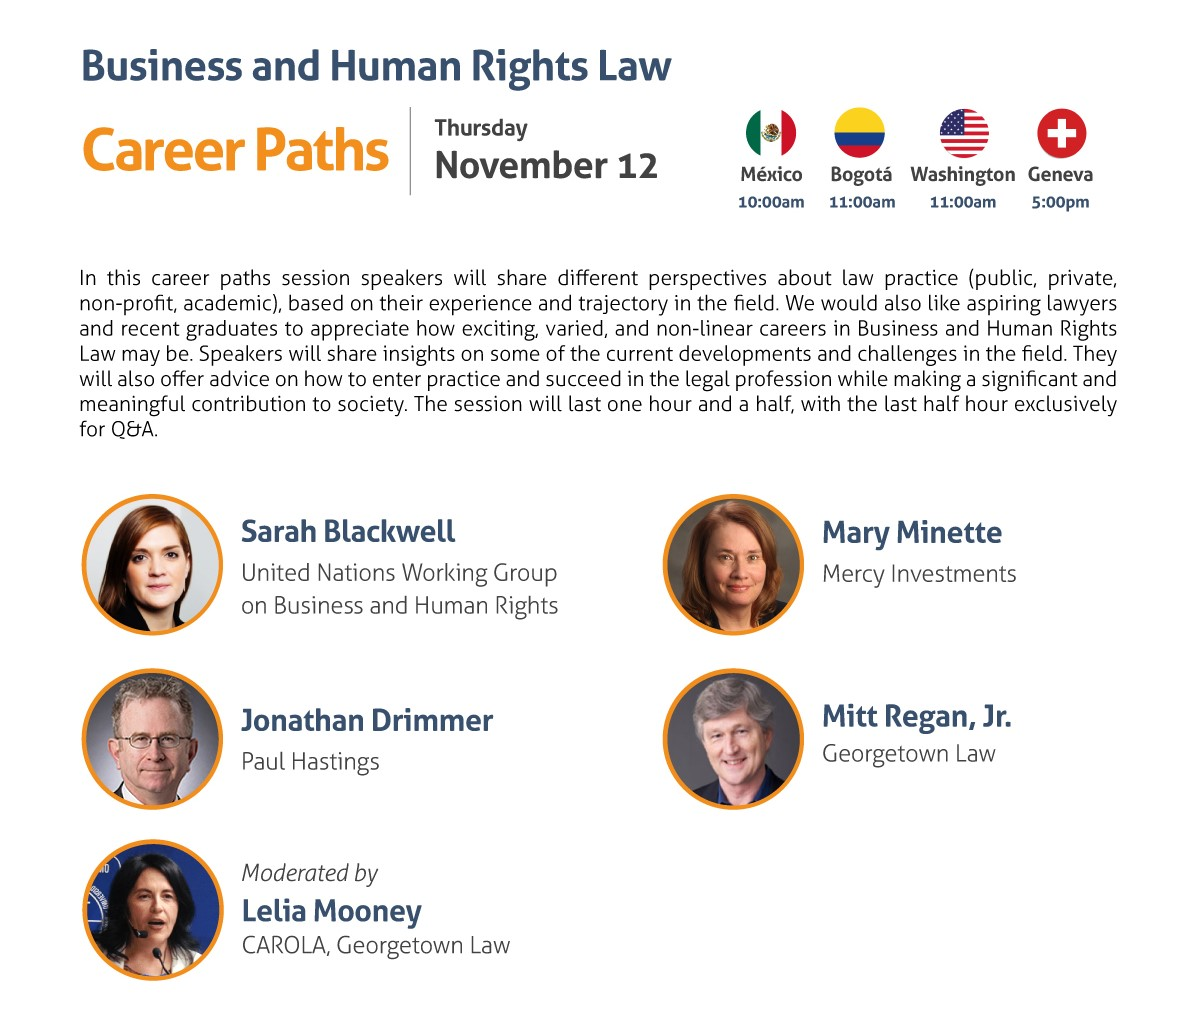 Business and Human Rights Law Career Paths Thursday, November 12 10:00 am Mexico City 11:00 am Washington, DC / Bogota 5:00 pm Geneva In this career paths session speakers will share different perspectives about law practice (public, private, non-profit, academic), based on their experience and trajectory in the field. We would also like aspiring lawyers and recent graduates to appreciate how exciting, varied, and non-linear careers in Business and Human Rights Law may be. Speakers will share insights on some of the current developments and challenges in the field. They will also offer advice on how to enter practice and succeed in the legal profession while making a significant and meaningful contribution to society. The session will last one hour and a half, with the last half hour exclusively for Q&A. - Sarah Blackwell, UN Working Group on Business and Human Rights - Jonathan Drimmer, Paul Hastings - Mary Minette, Mercy Investments - Mitt Regan, Jr., Georgetown Law Moderated by: Lelia Mooney, CAROLA, Georgetown Law